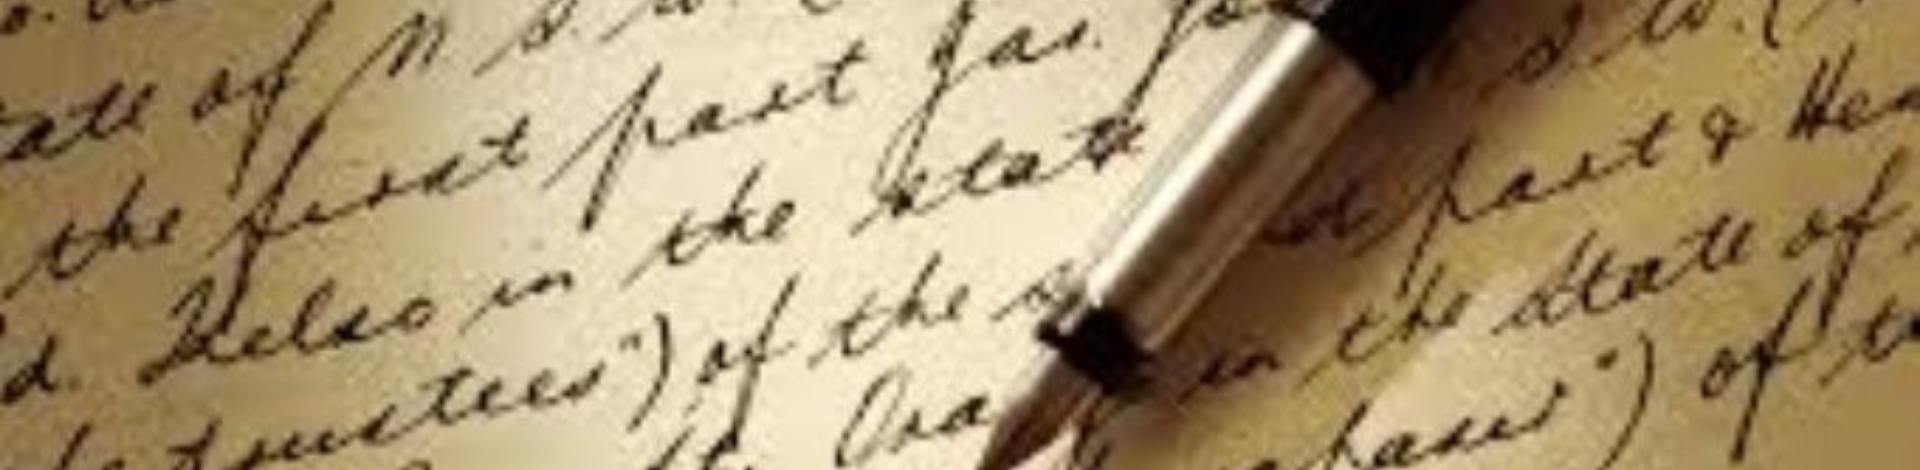 Old style pen and cursive writing